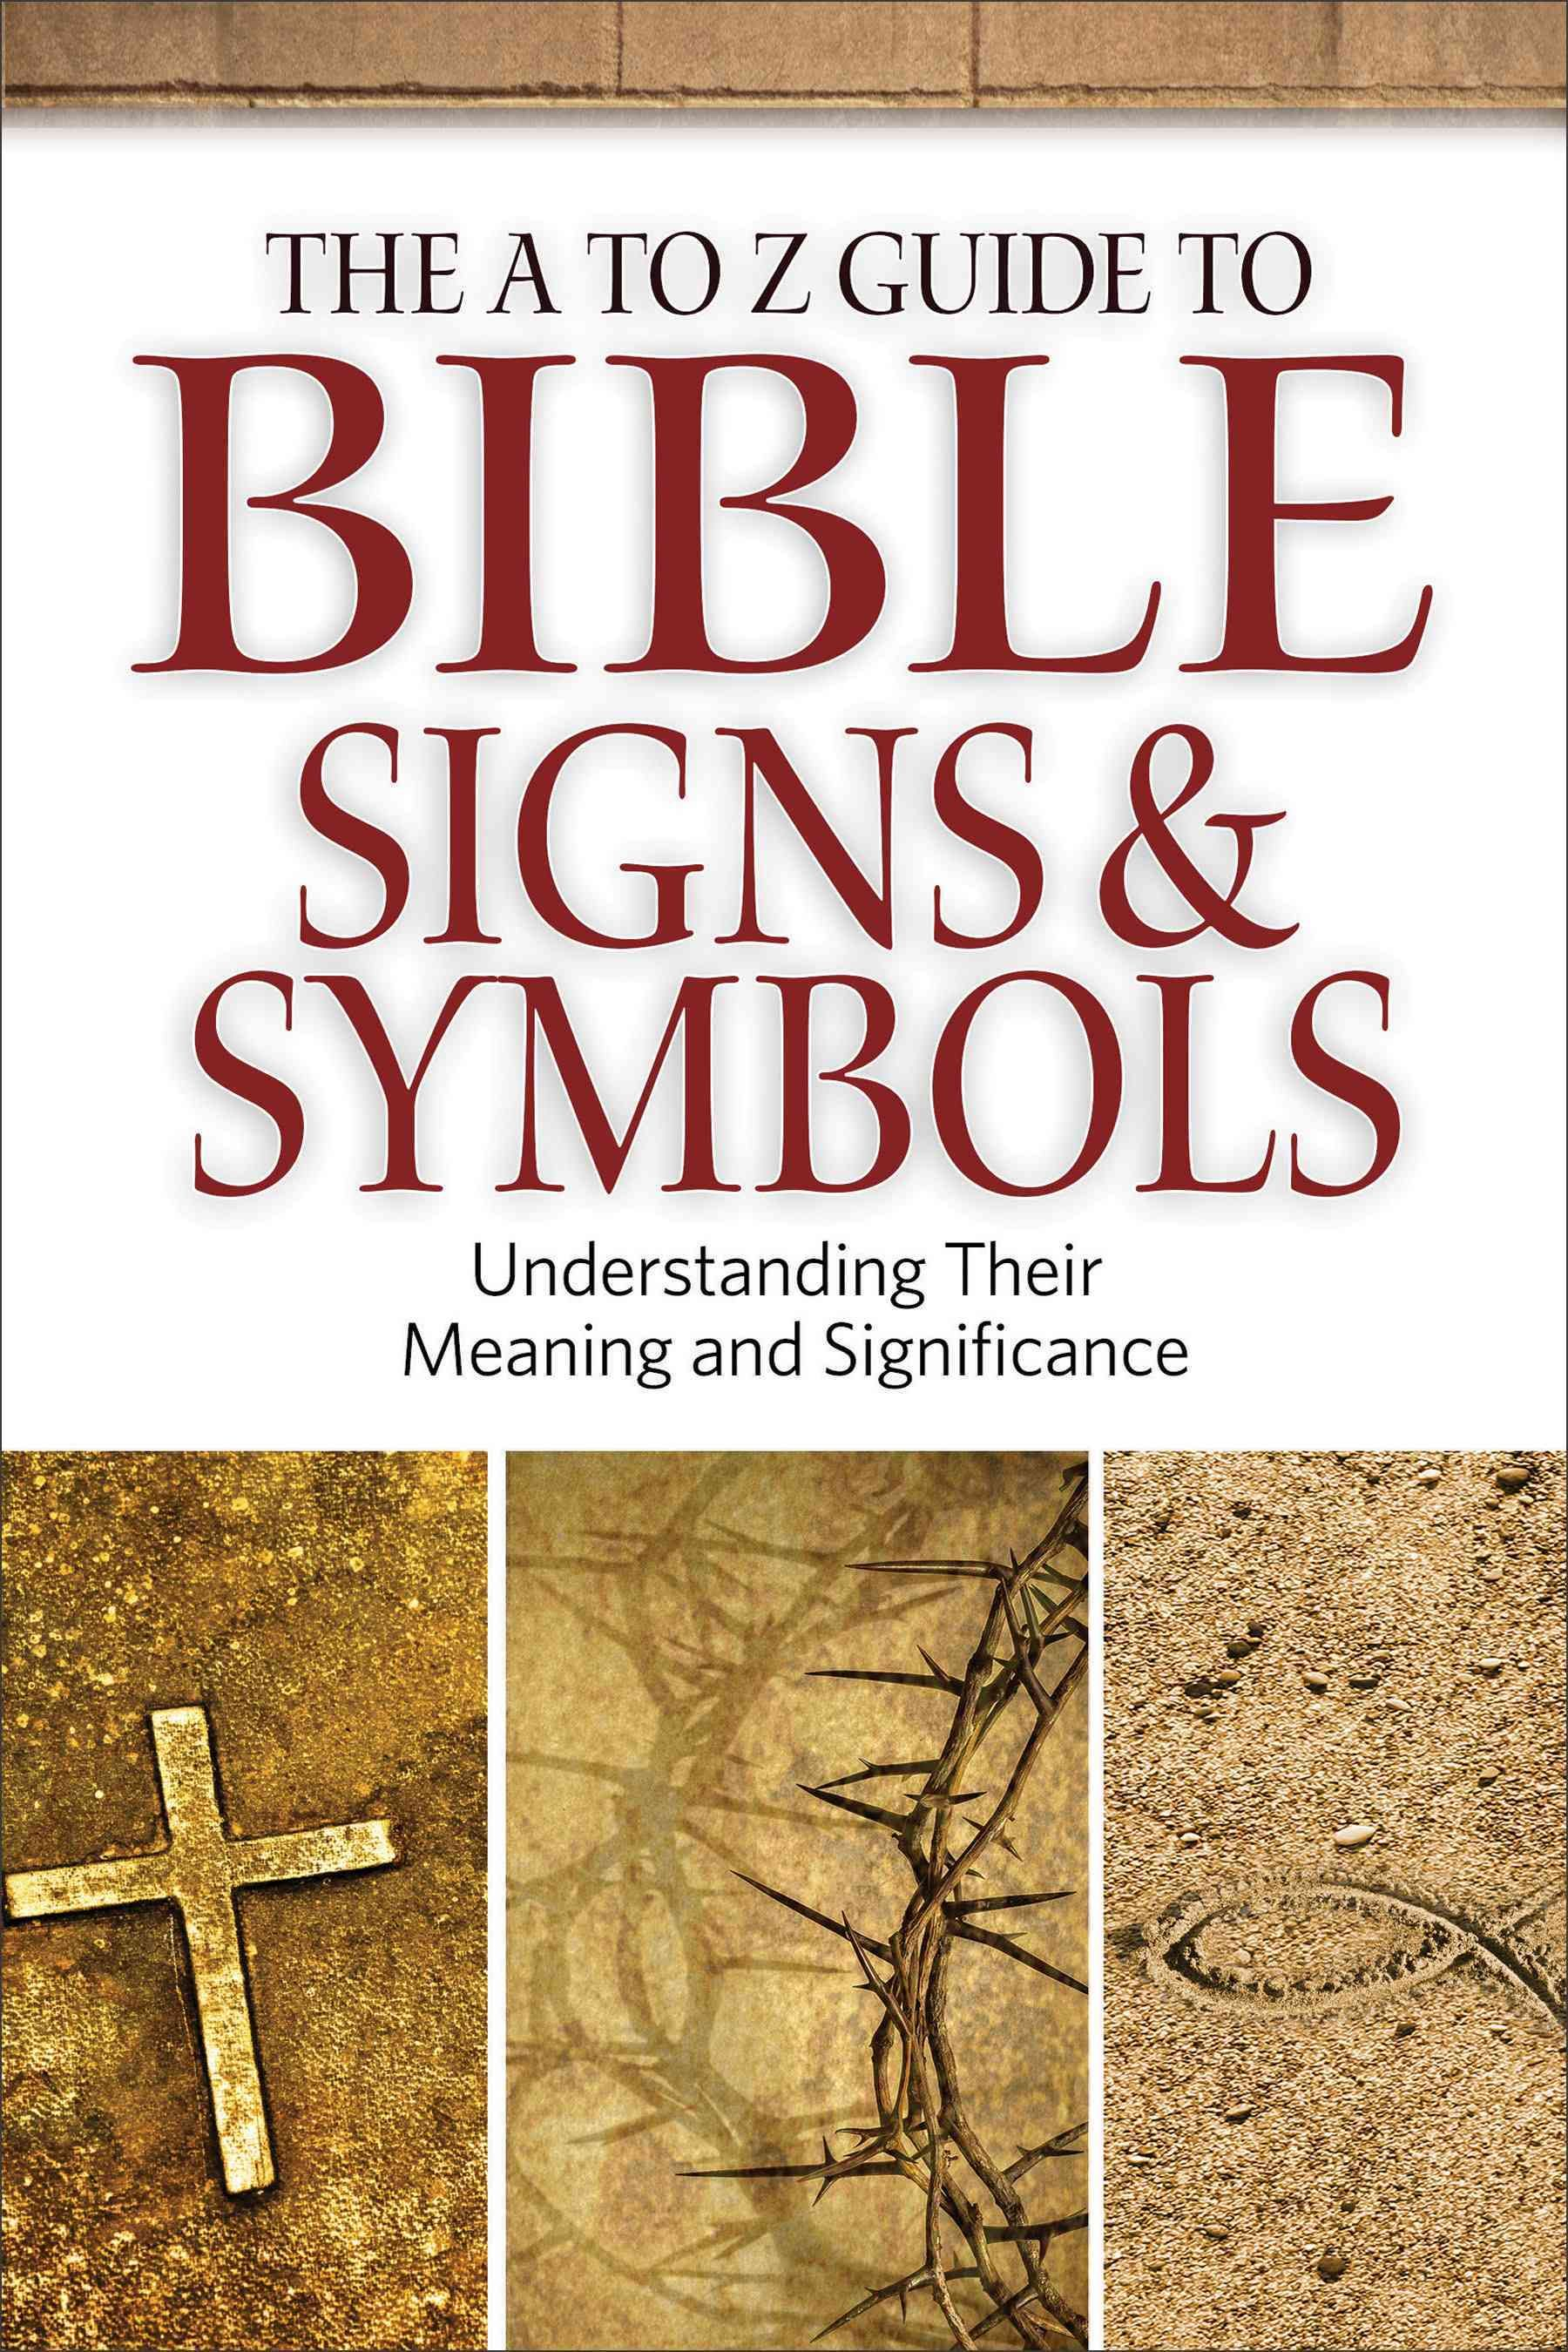 Christian prophetic symbols gallery symbol and sign ideas the a to z guide to bible signs and symbols understanding their the a to z buycottarizona